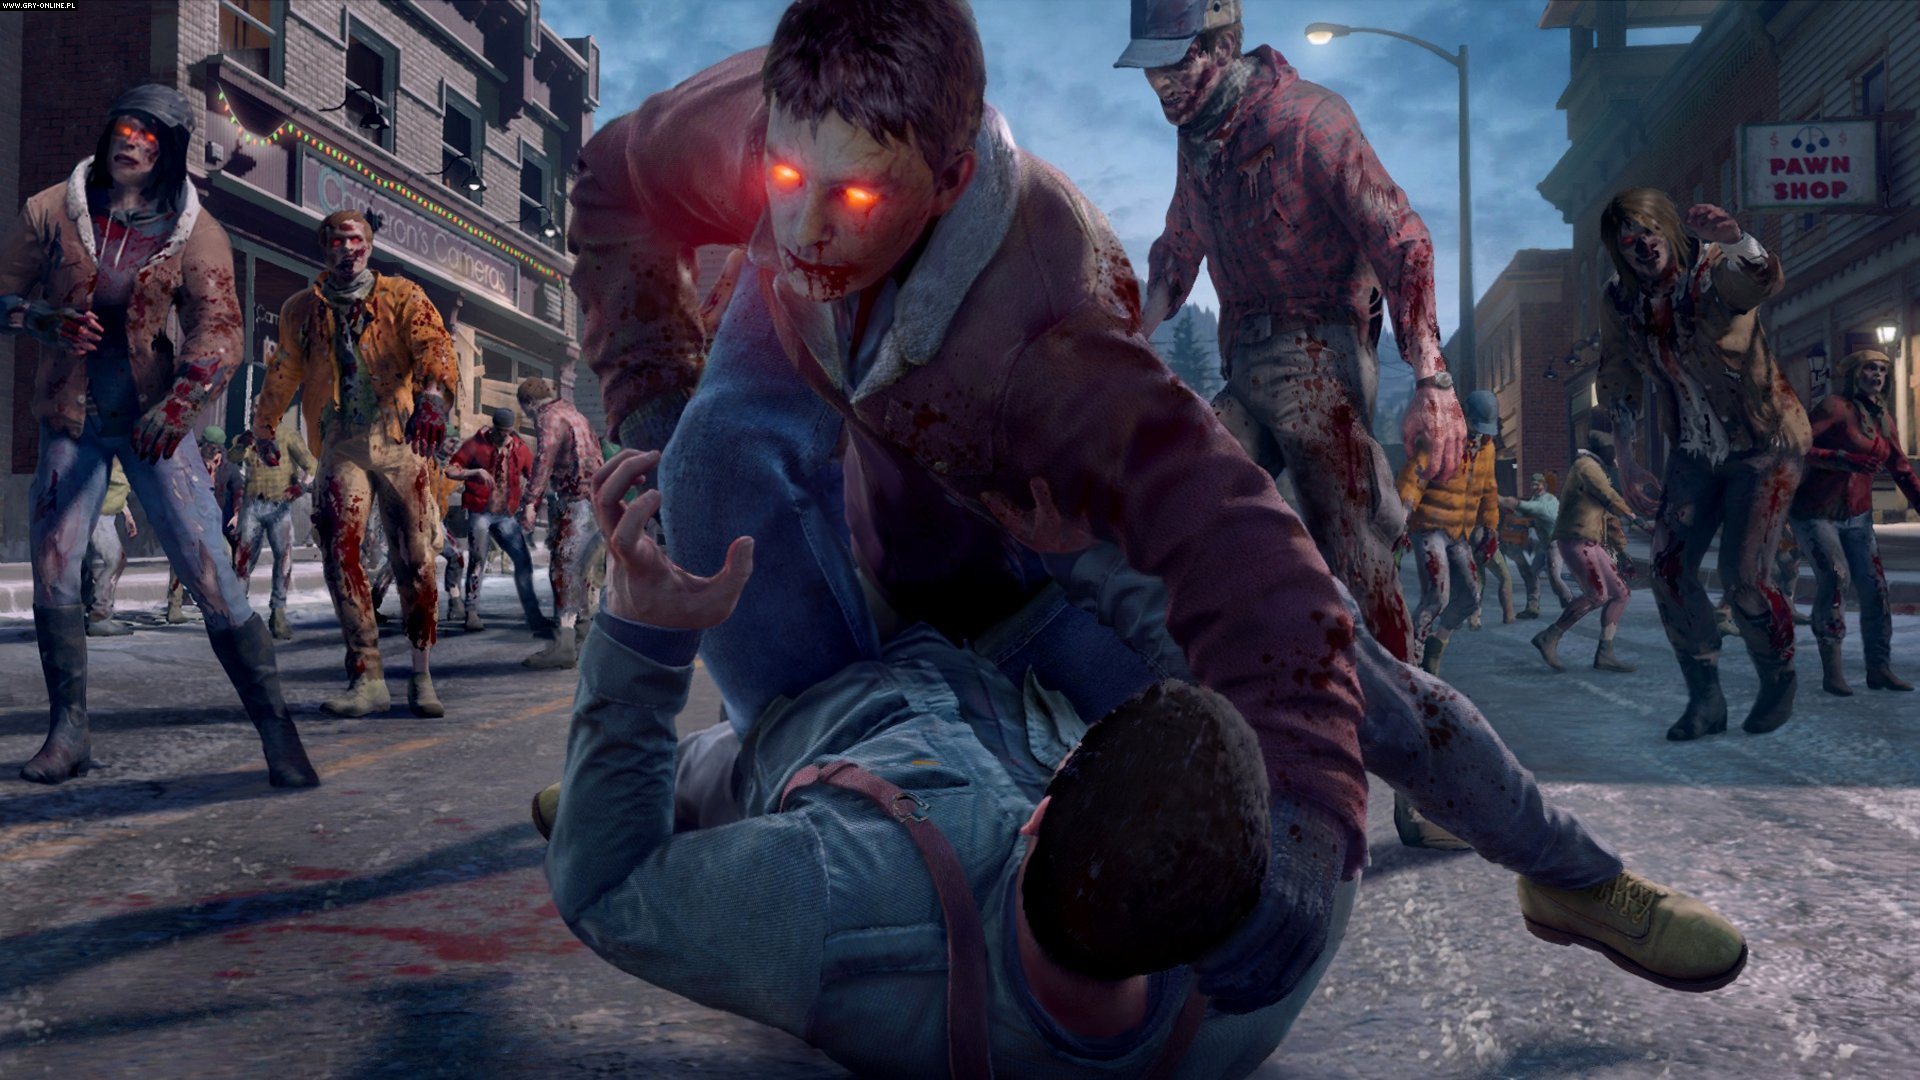 Dead Rising 4 PC, XONE Games Image 13/15, Capcom